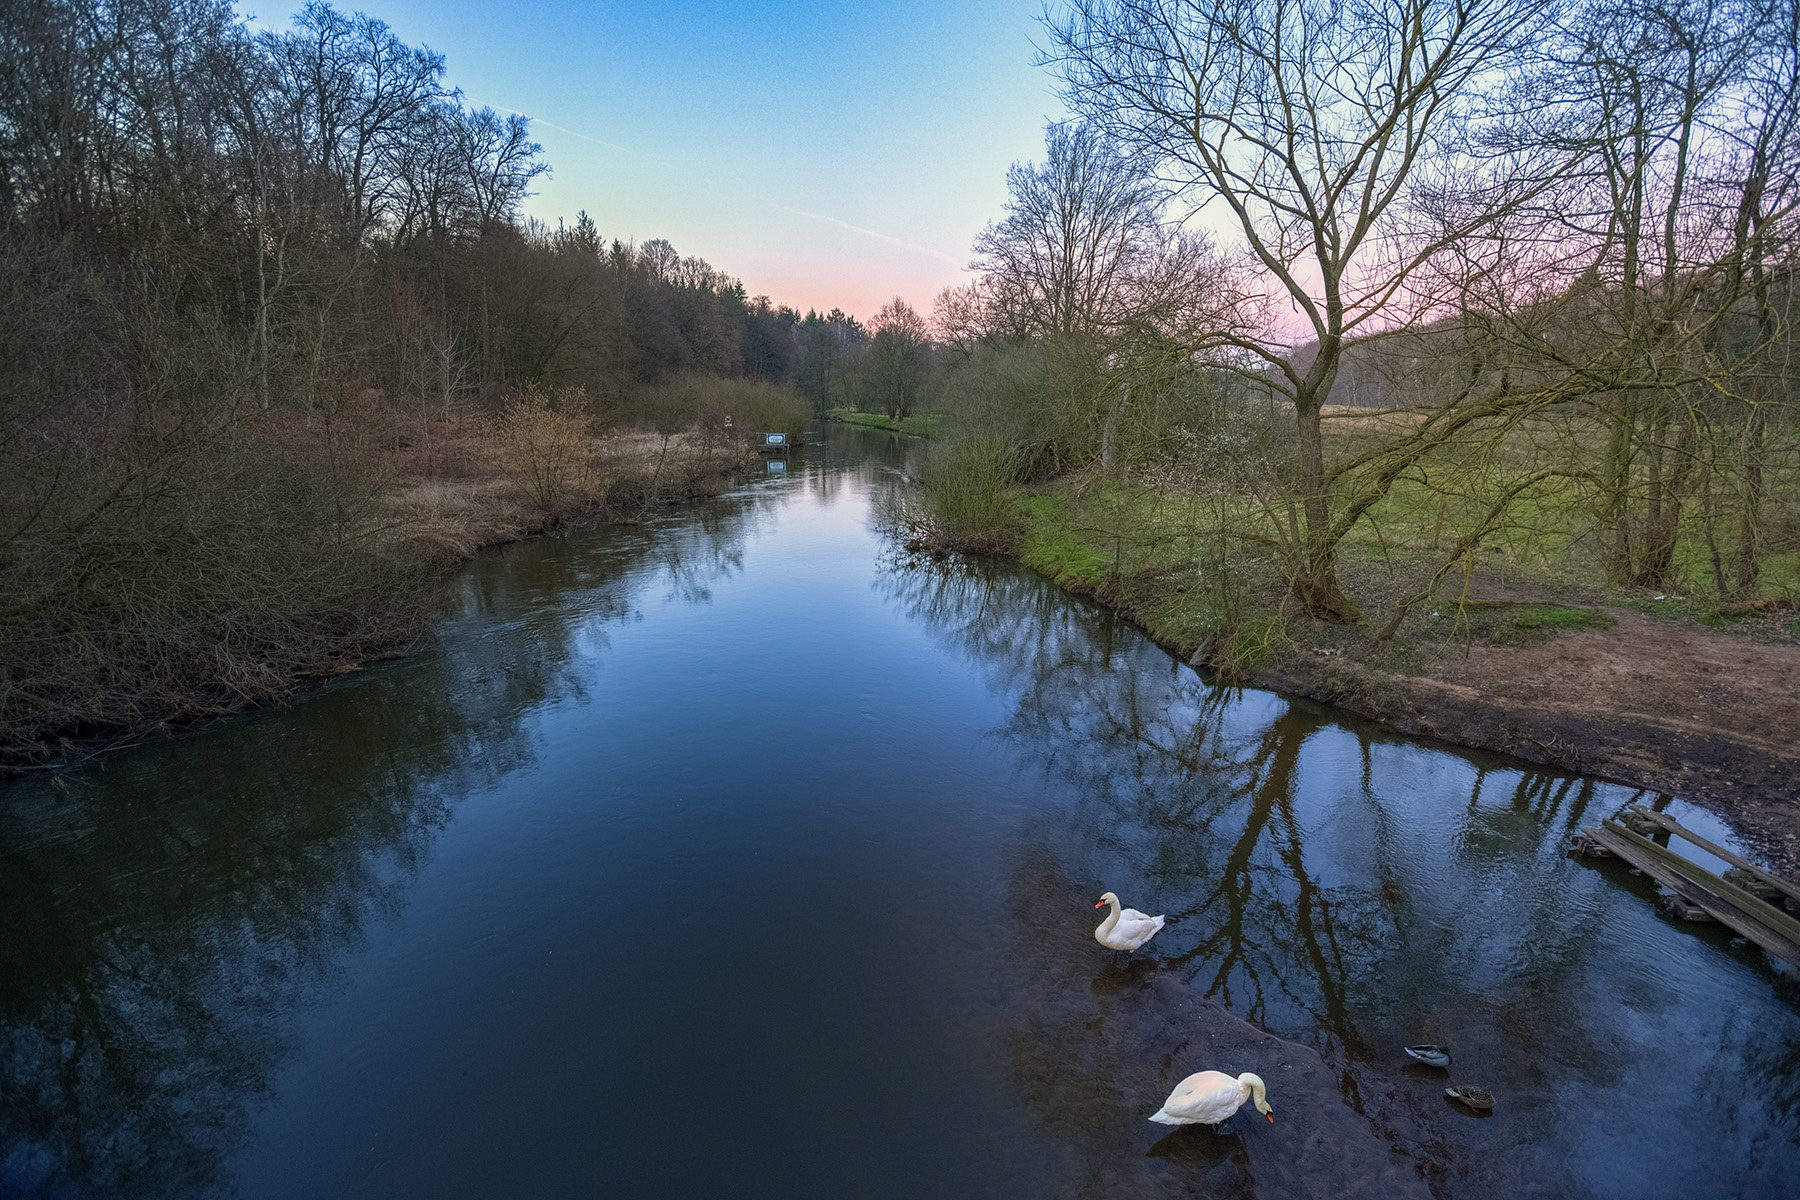 River Ilmenau at the blue hour by Maik Richter Photography